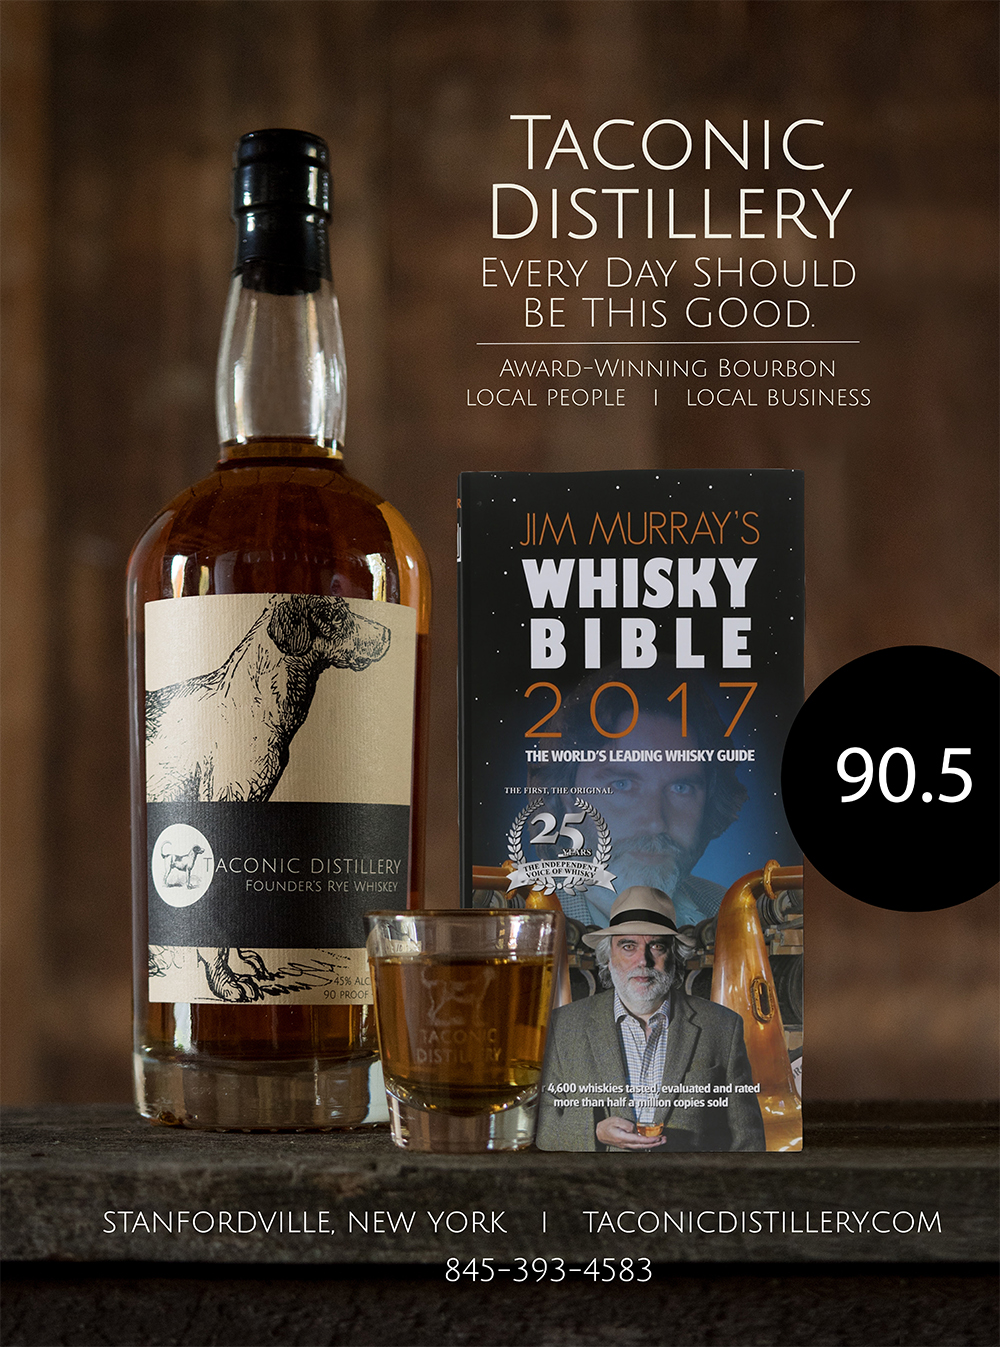 The Whisky Bible rates Founder's Rye at 90